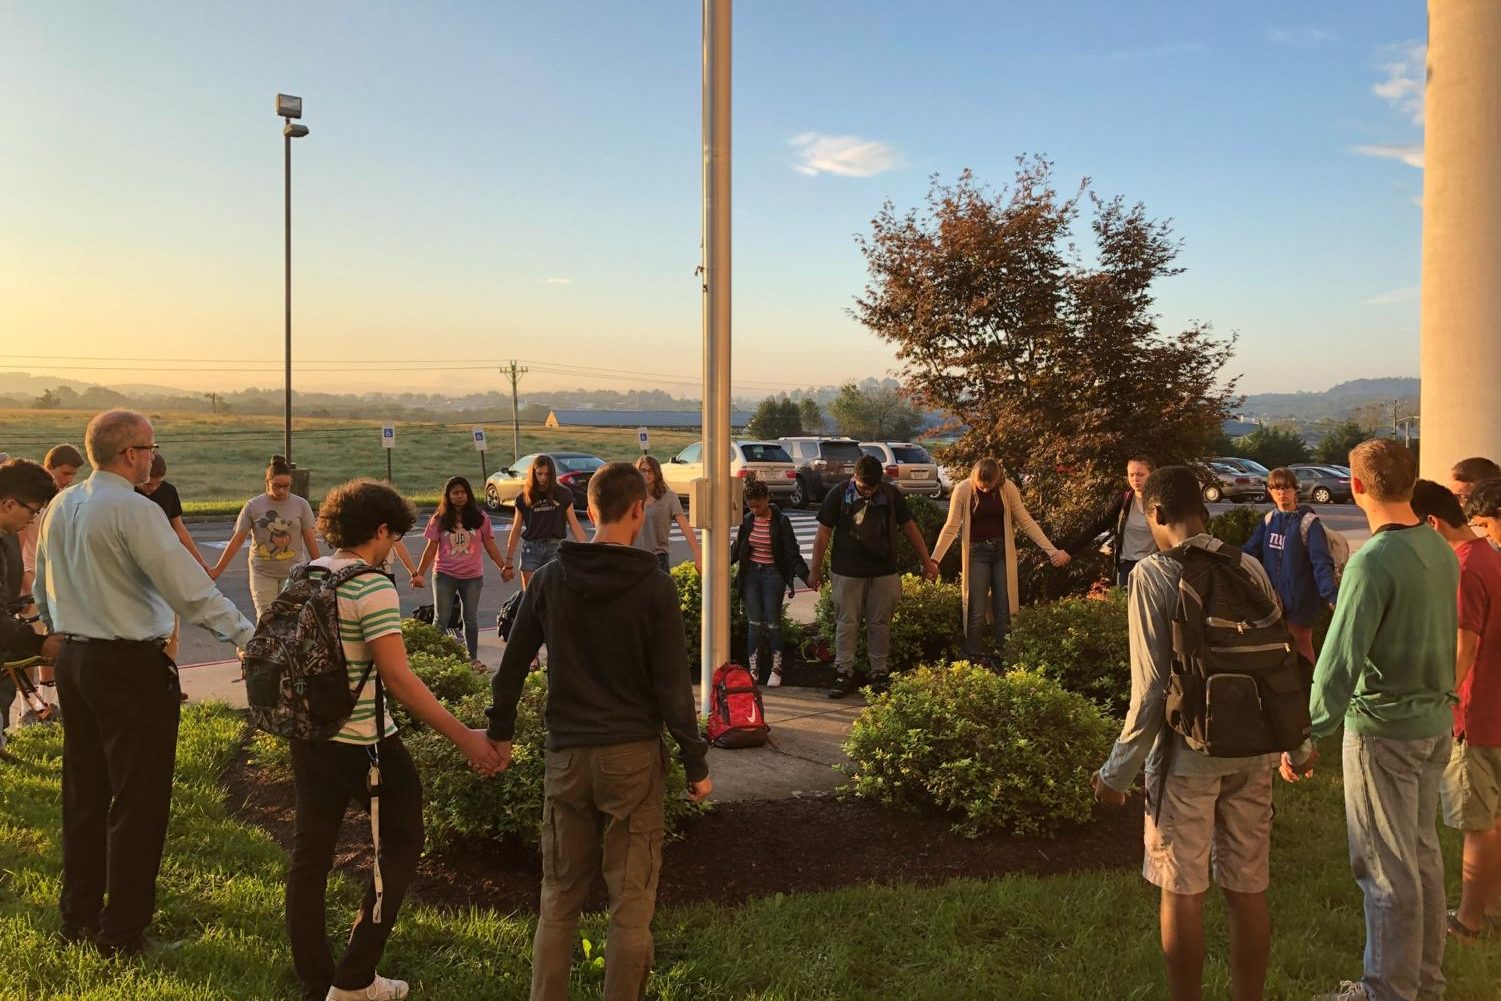 Students at the See You At The Pole event gather around the flagpole in a circle and pray.